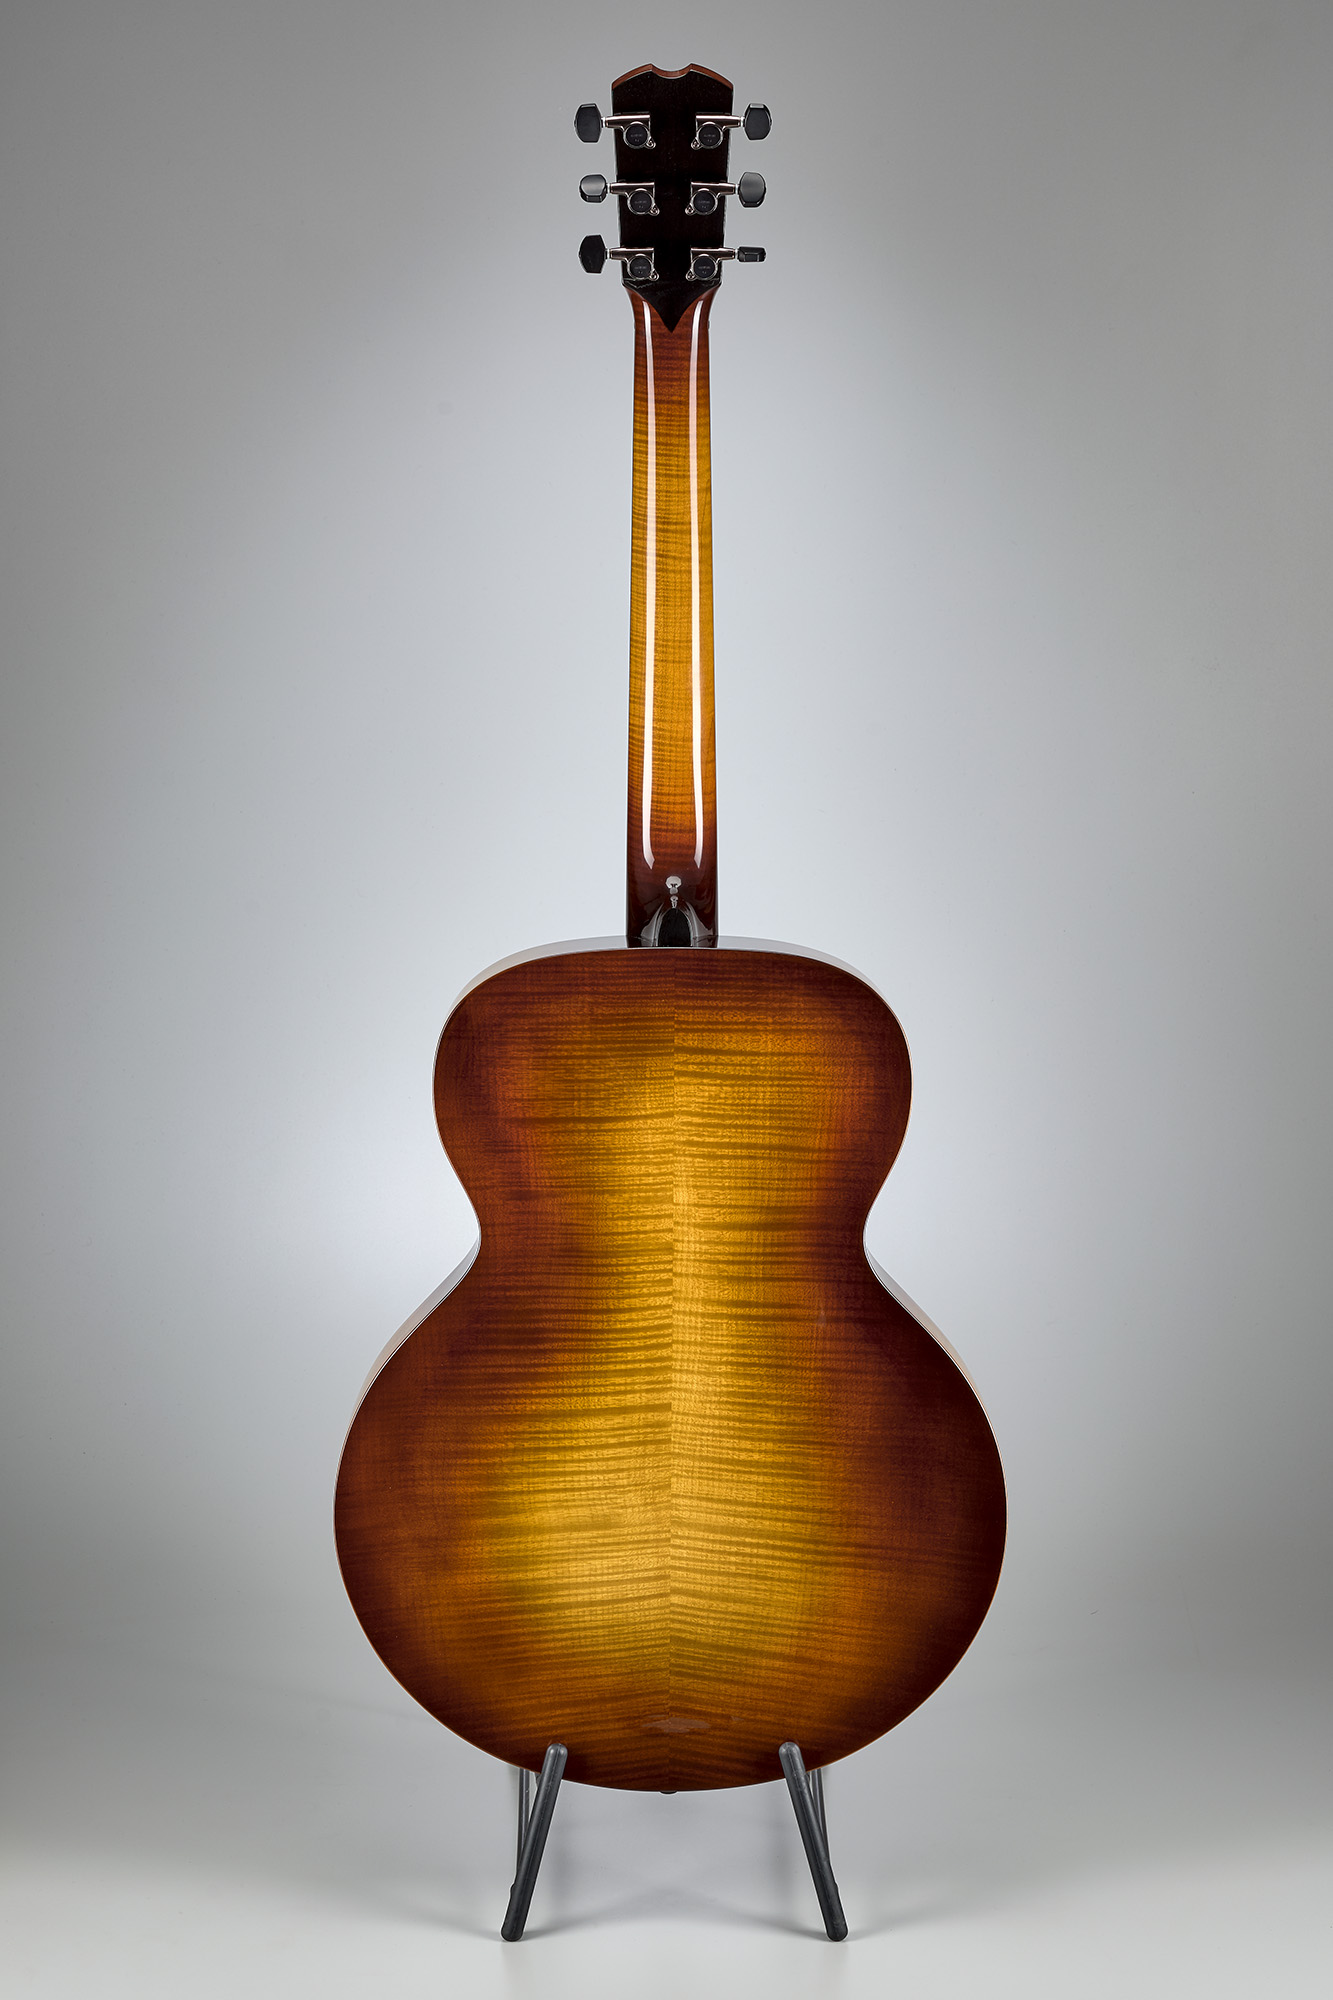 tim may carved top baritone acoustic dhr guitar experience. Black Bedroom Furniture Sets. Home Design Ideas